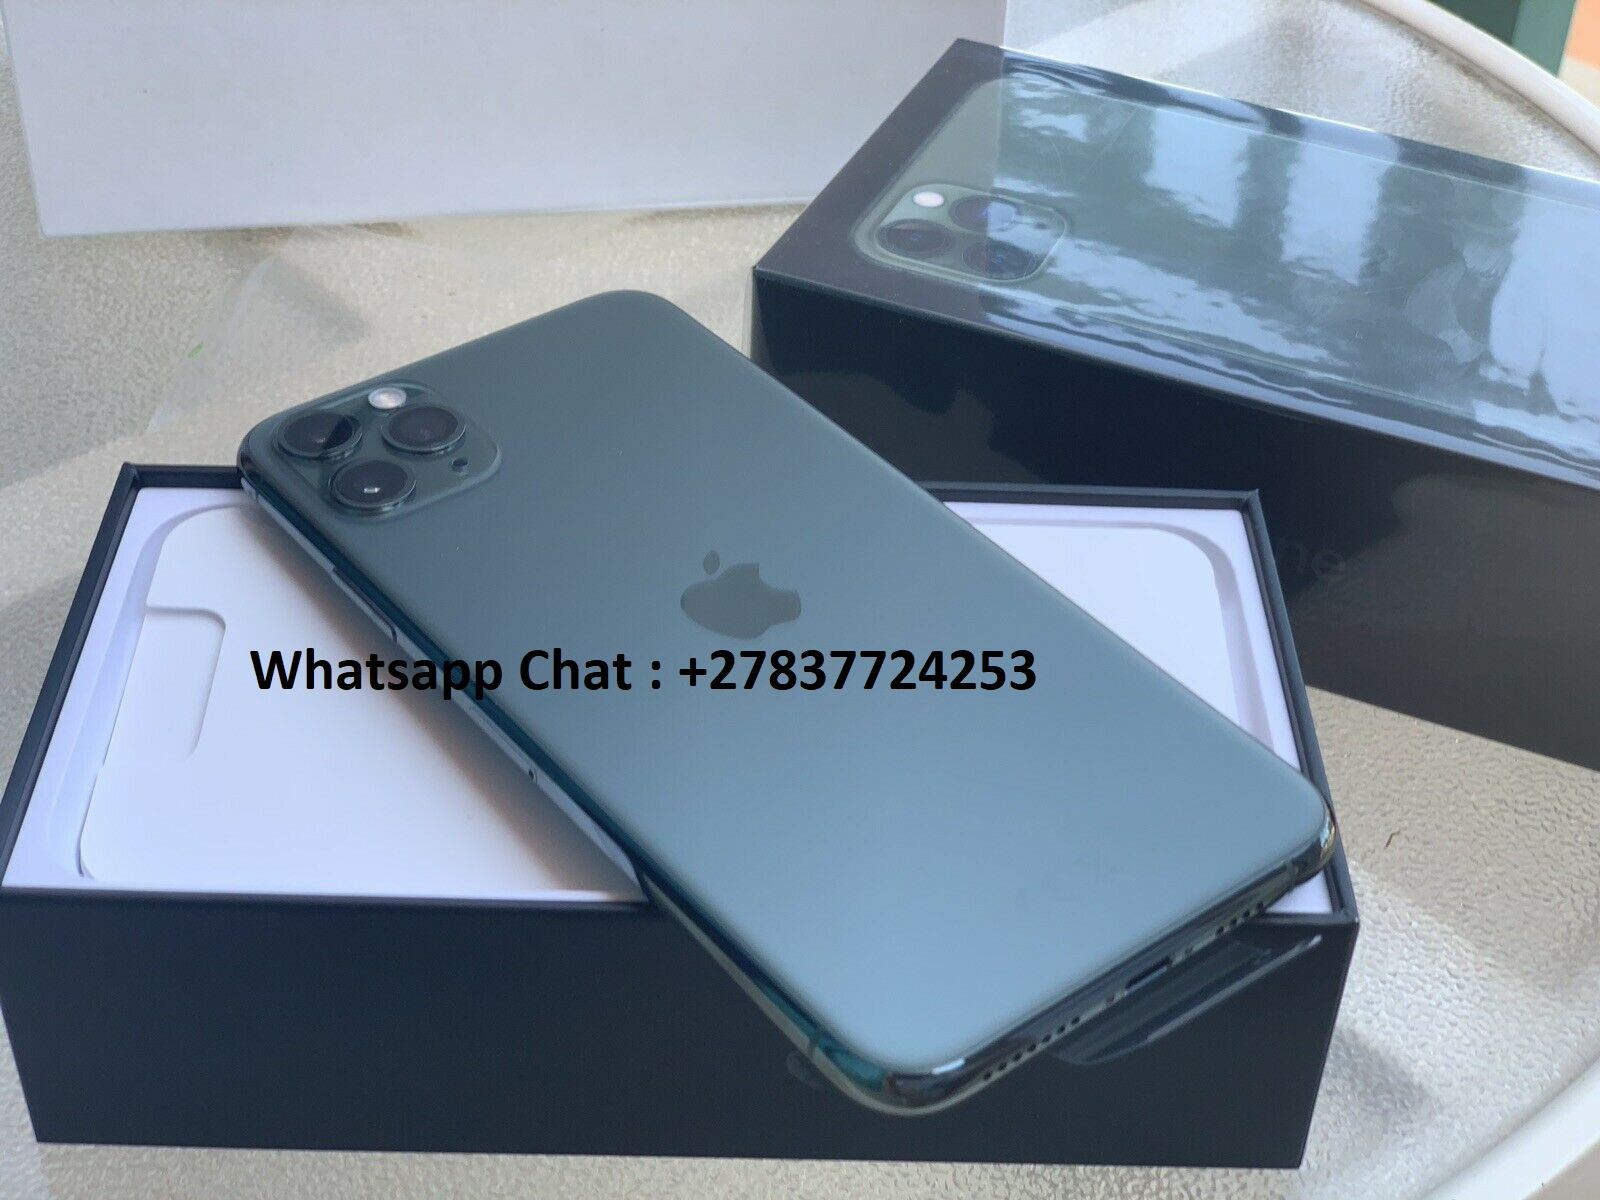 Apple iPhone 11 Pro 64GB  per 600 EUR, Apple iPhone  11 Pro Max 64GB per 650 EUR, Apple iPhone XS 64GB per 400 EUR,  Apple iPhone XS Max 64GB per 430EUR , Whatsapp Chat : +27837724253